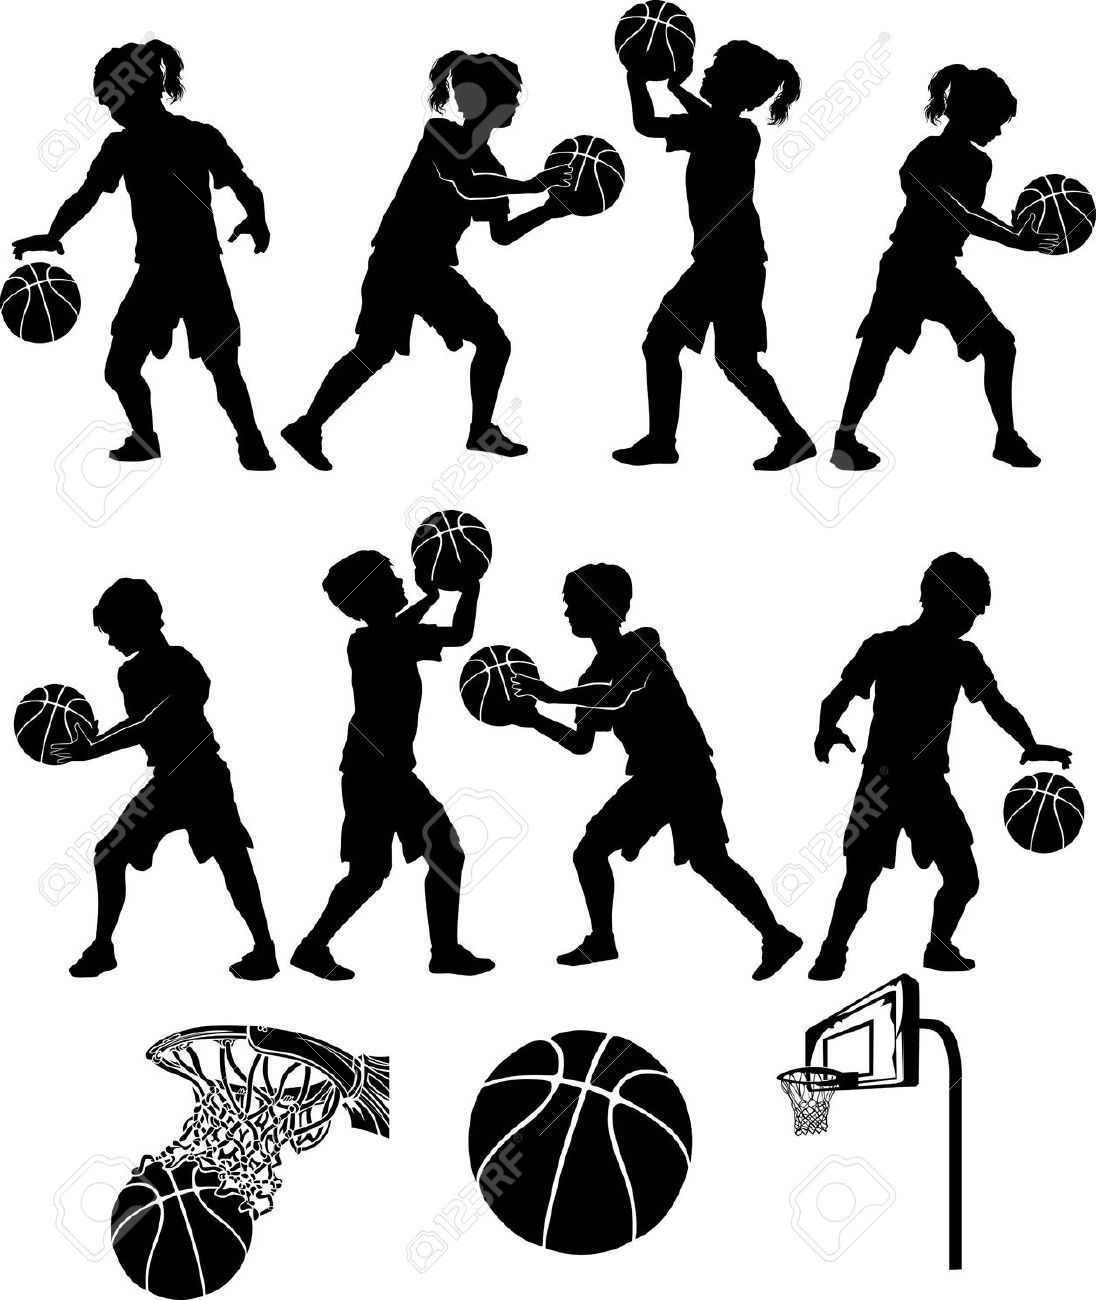 Basketball Players Silhouettes Of Kids Boys And Girls Kids Silhouette Basketball Players Basketball Silhouette